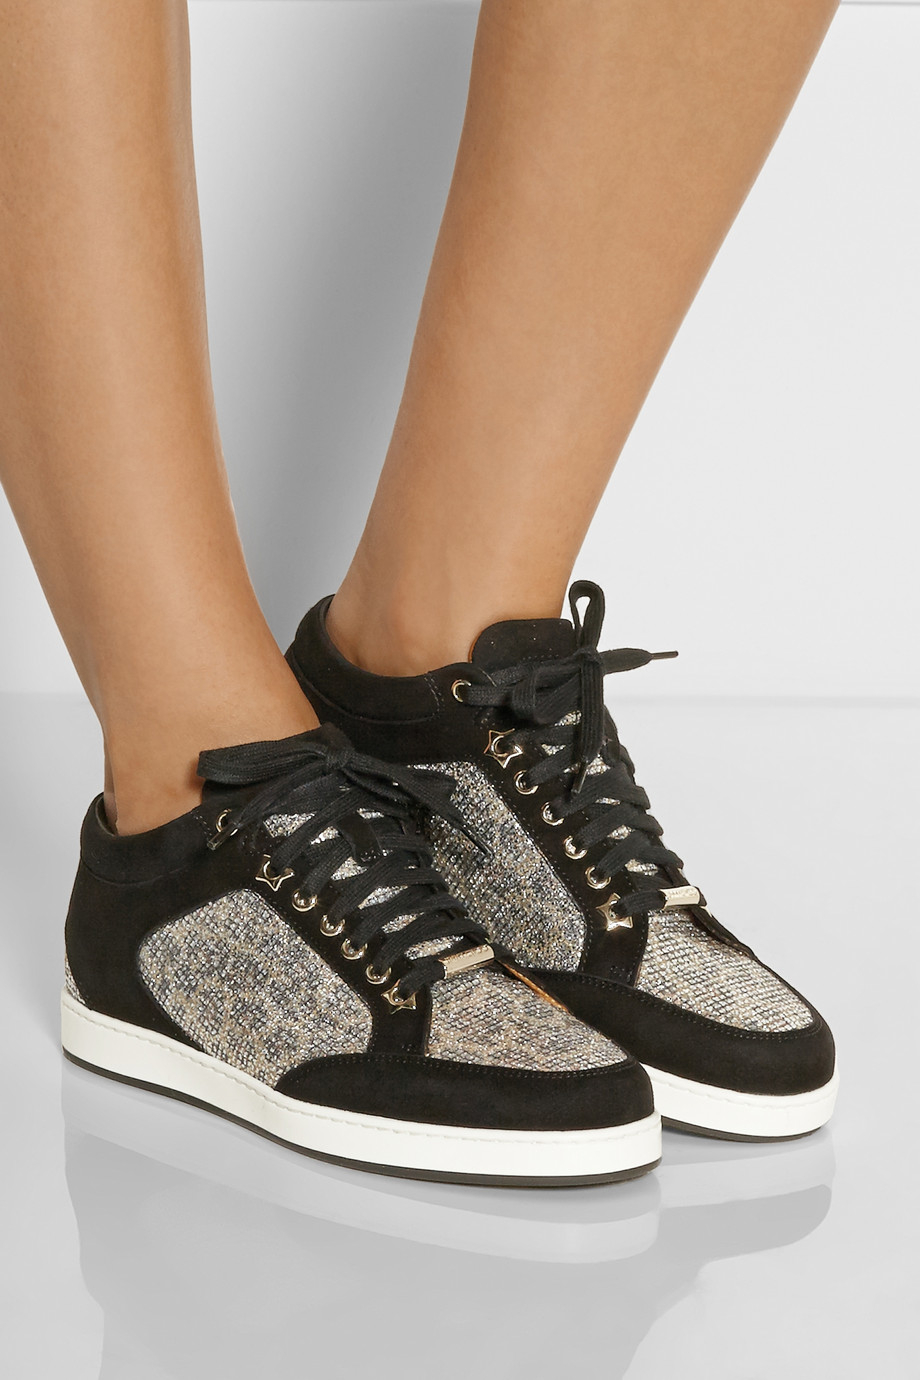 Jimmy Choo Miami Lace-Paneled Suede Sneakers in Metallic - Lyst 3b2f3e410